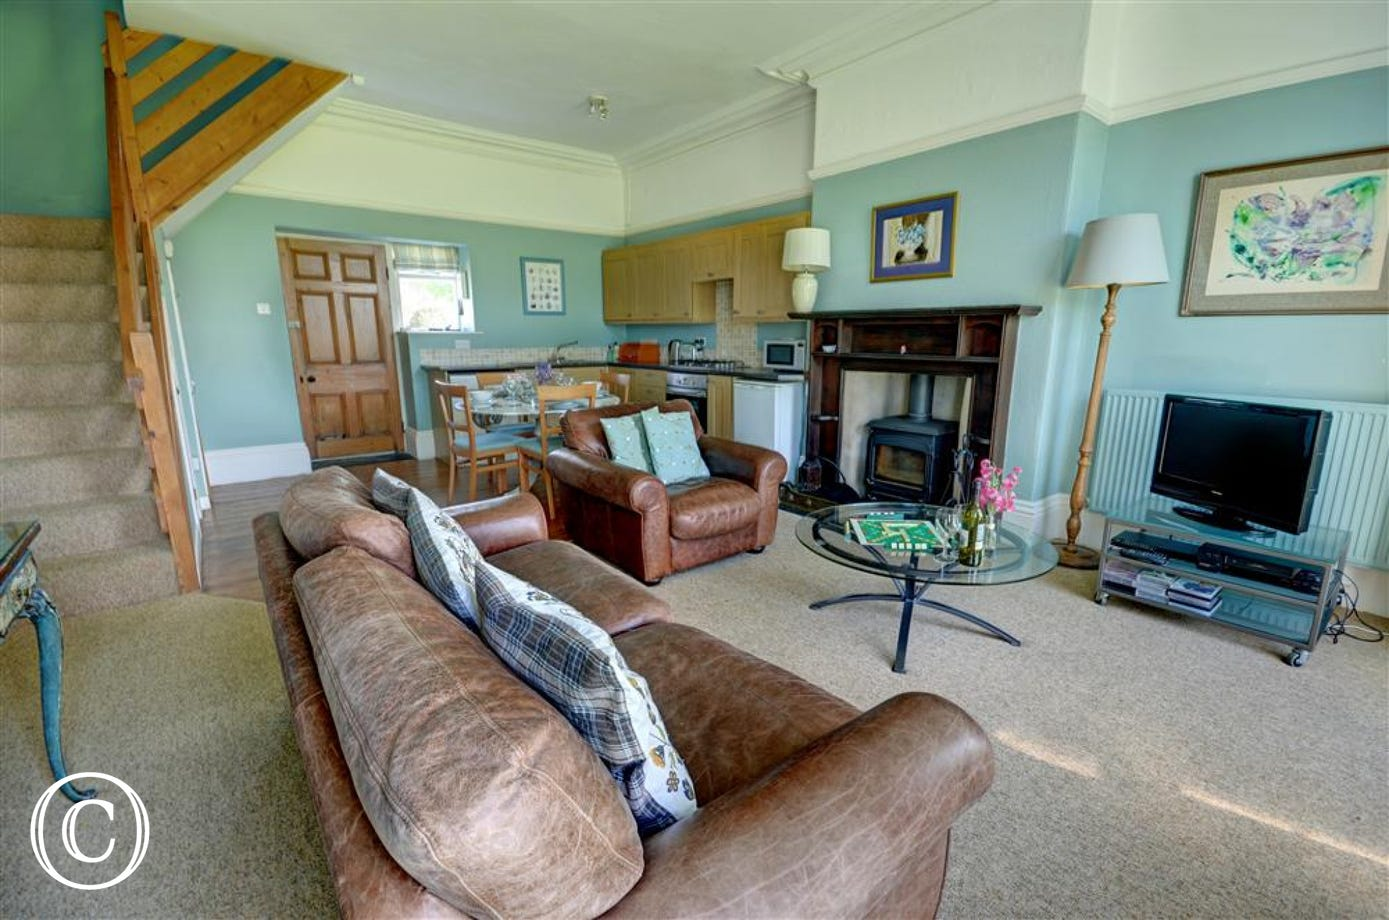 A splendid sitting room with comfy leather sofas and wood burning stove